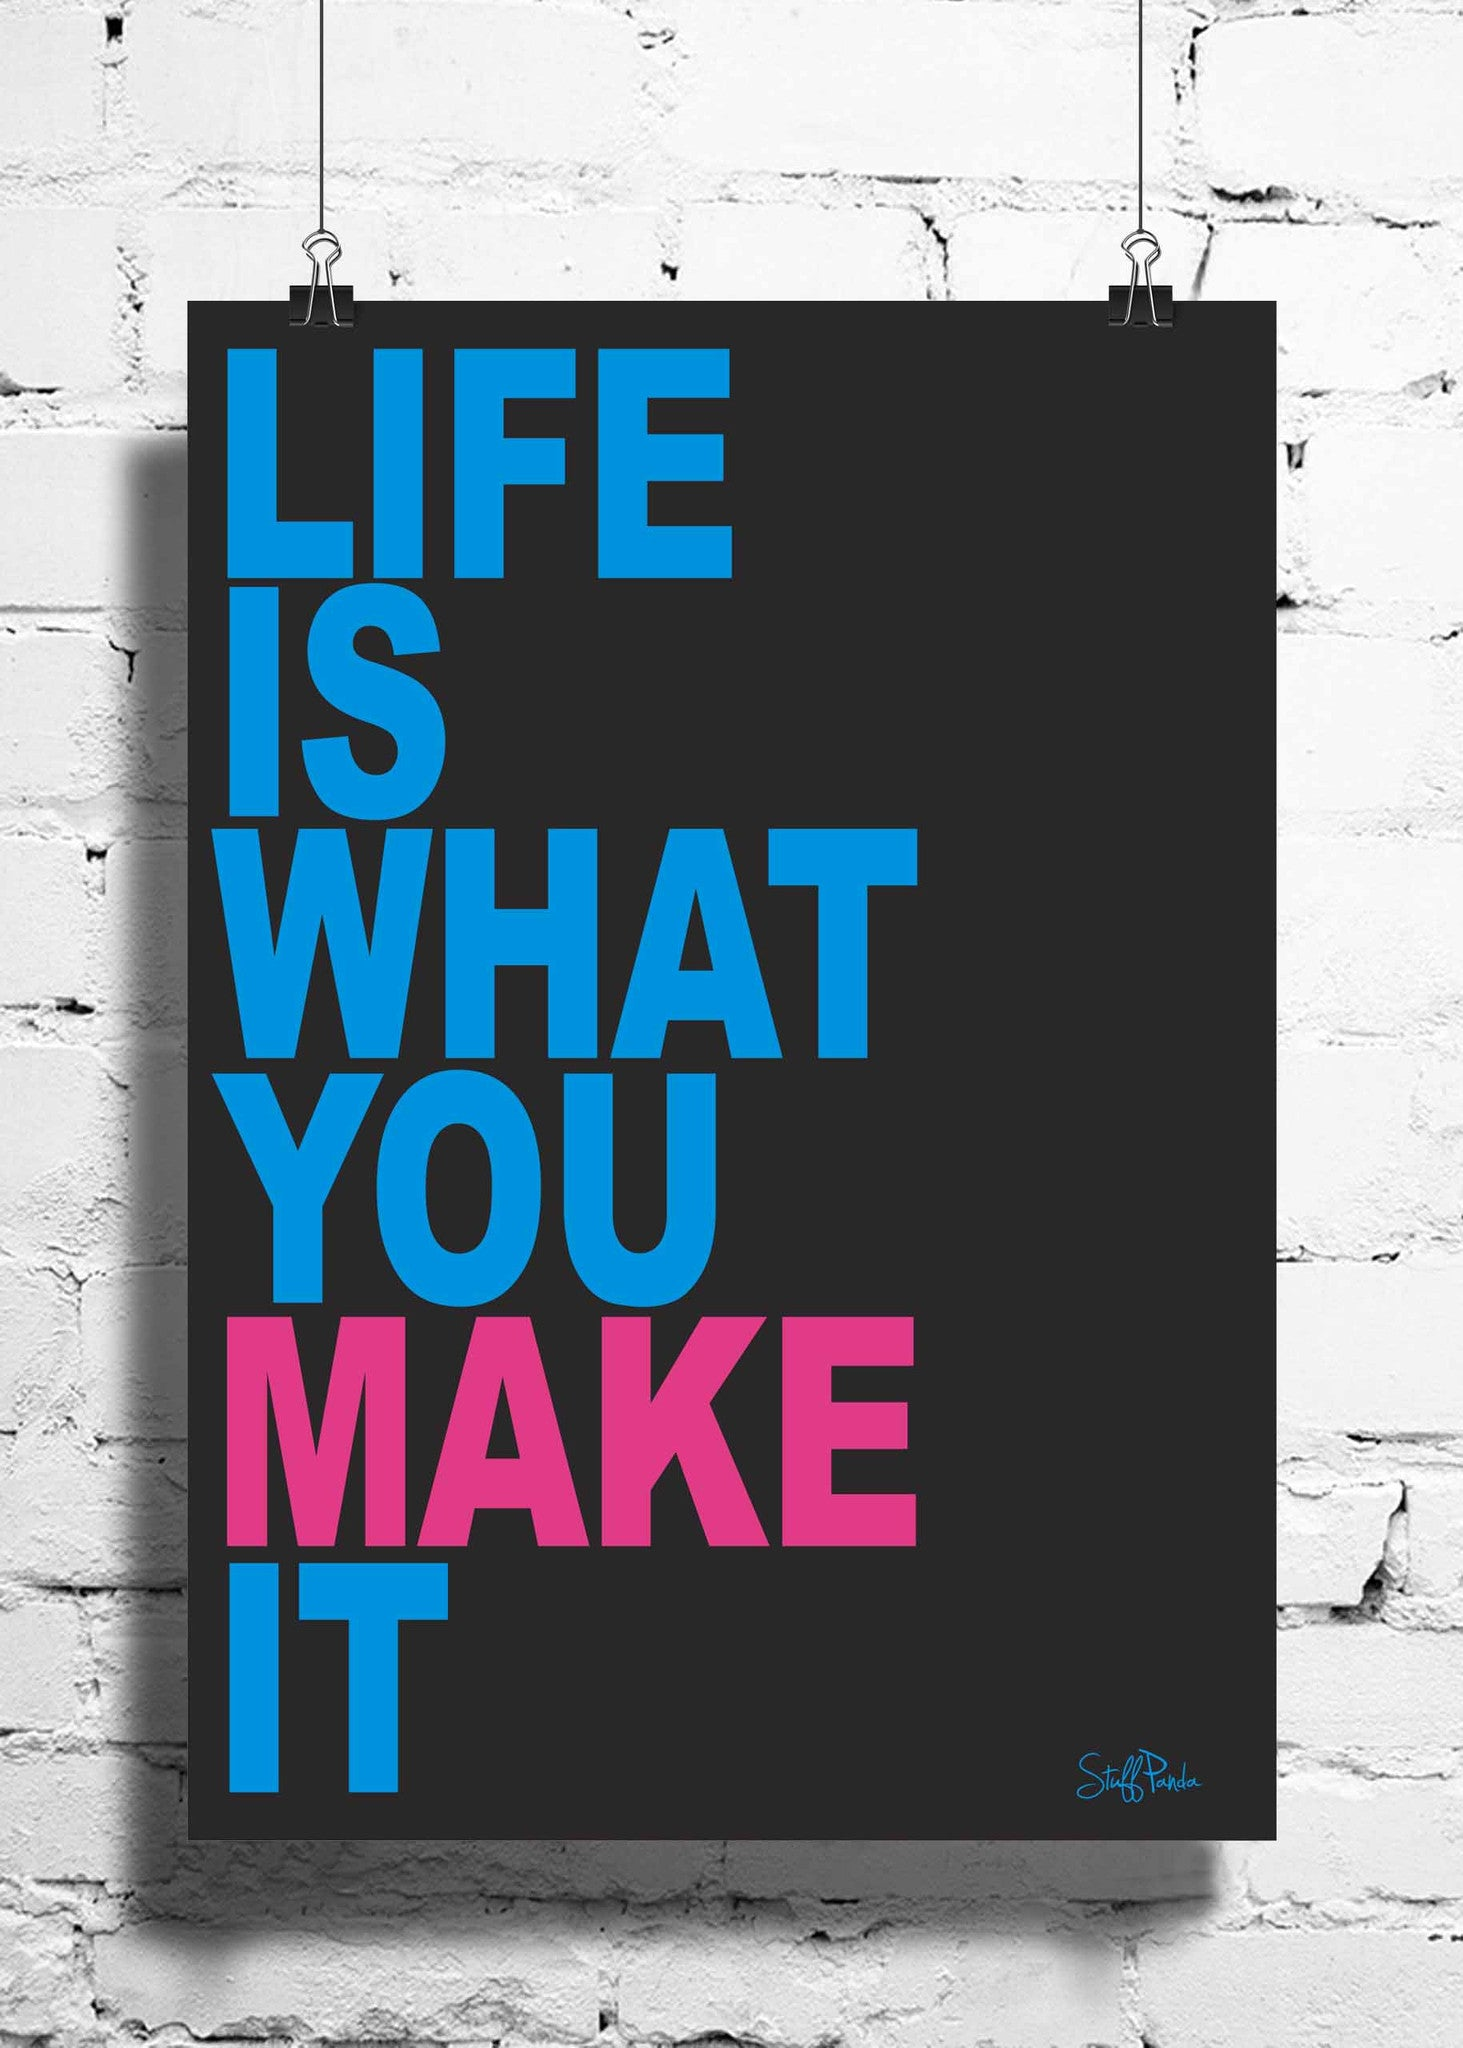 Cool Abstract Motivation Life is what you wall posters, art prints, stickers decals - stuffpanda - 1